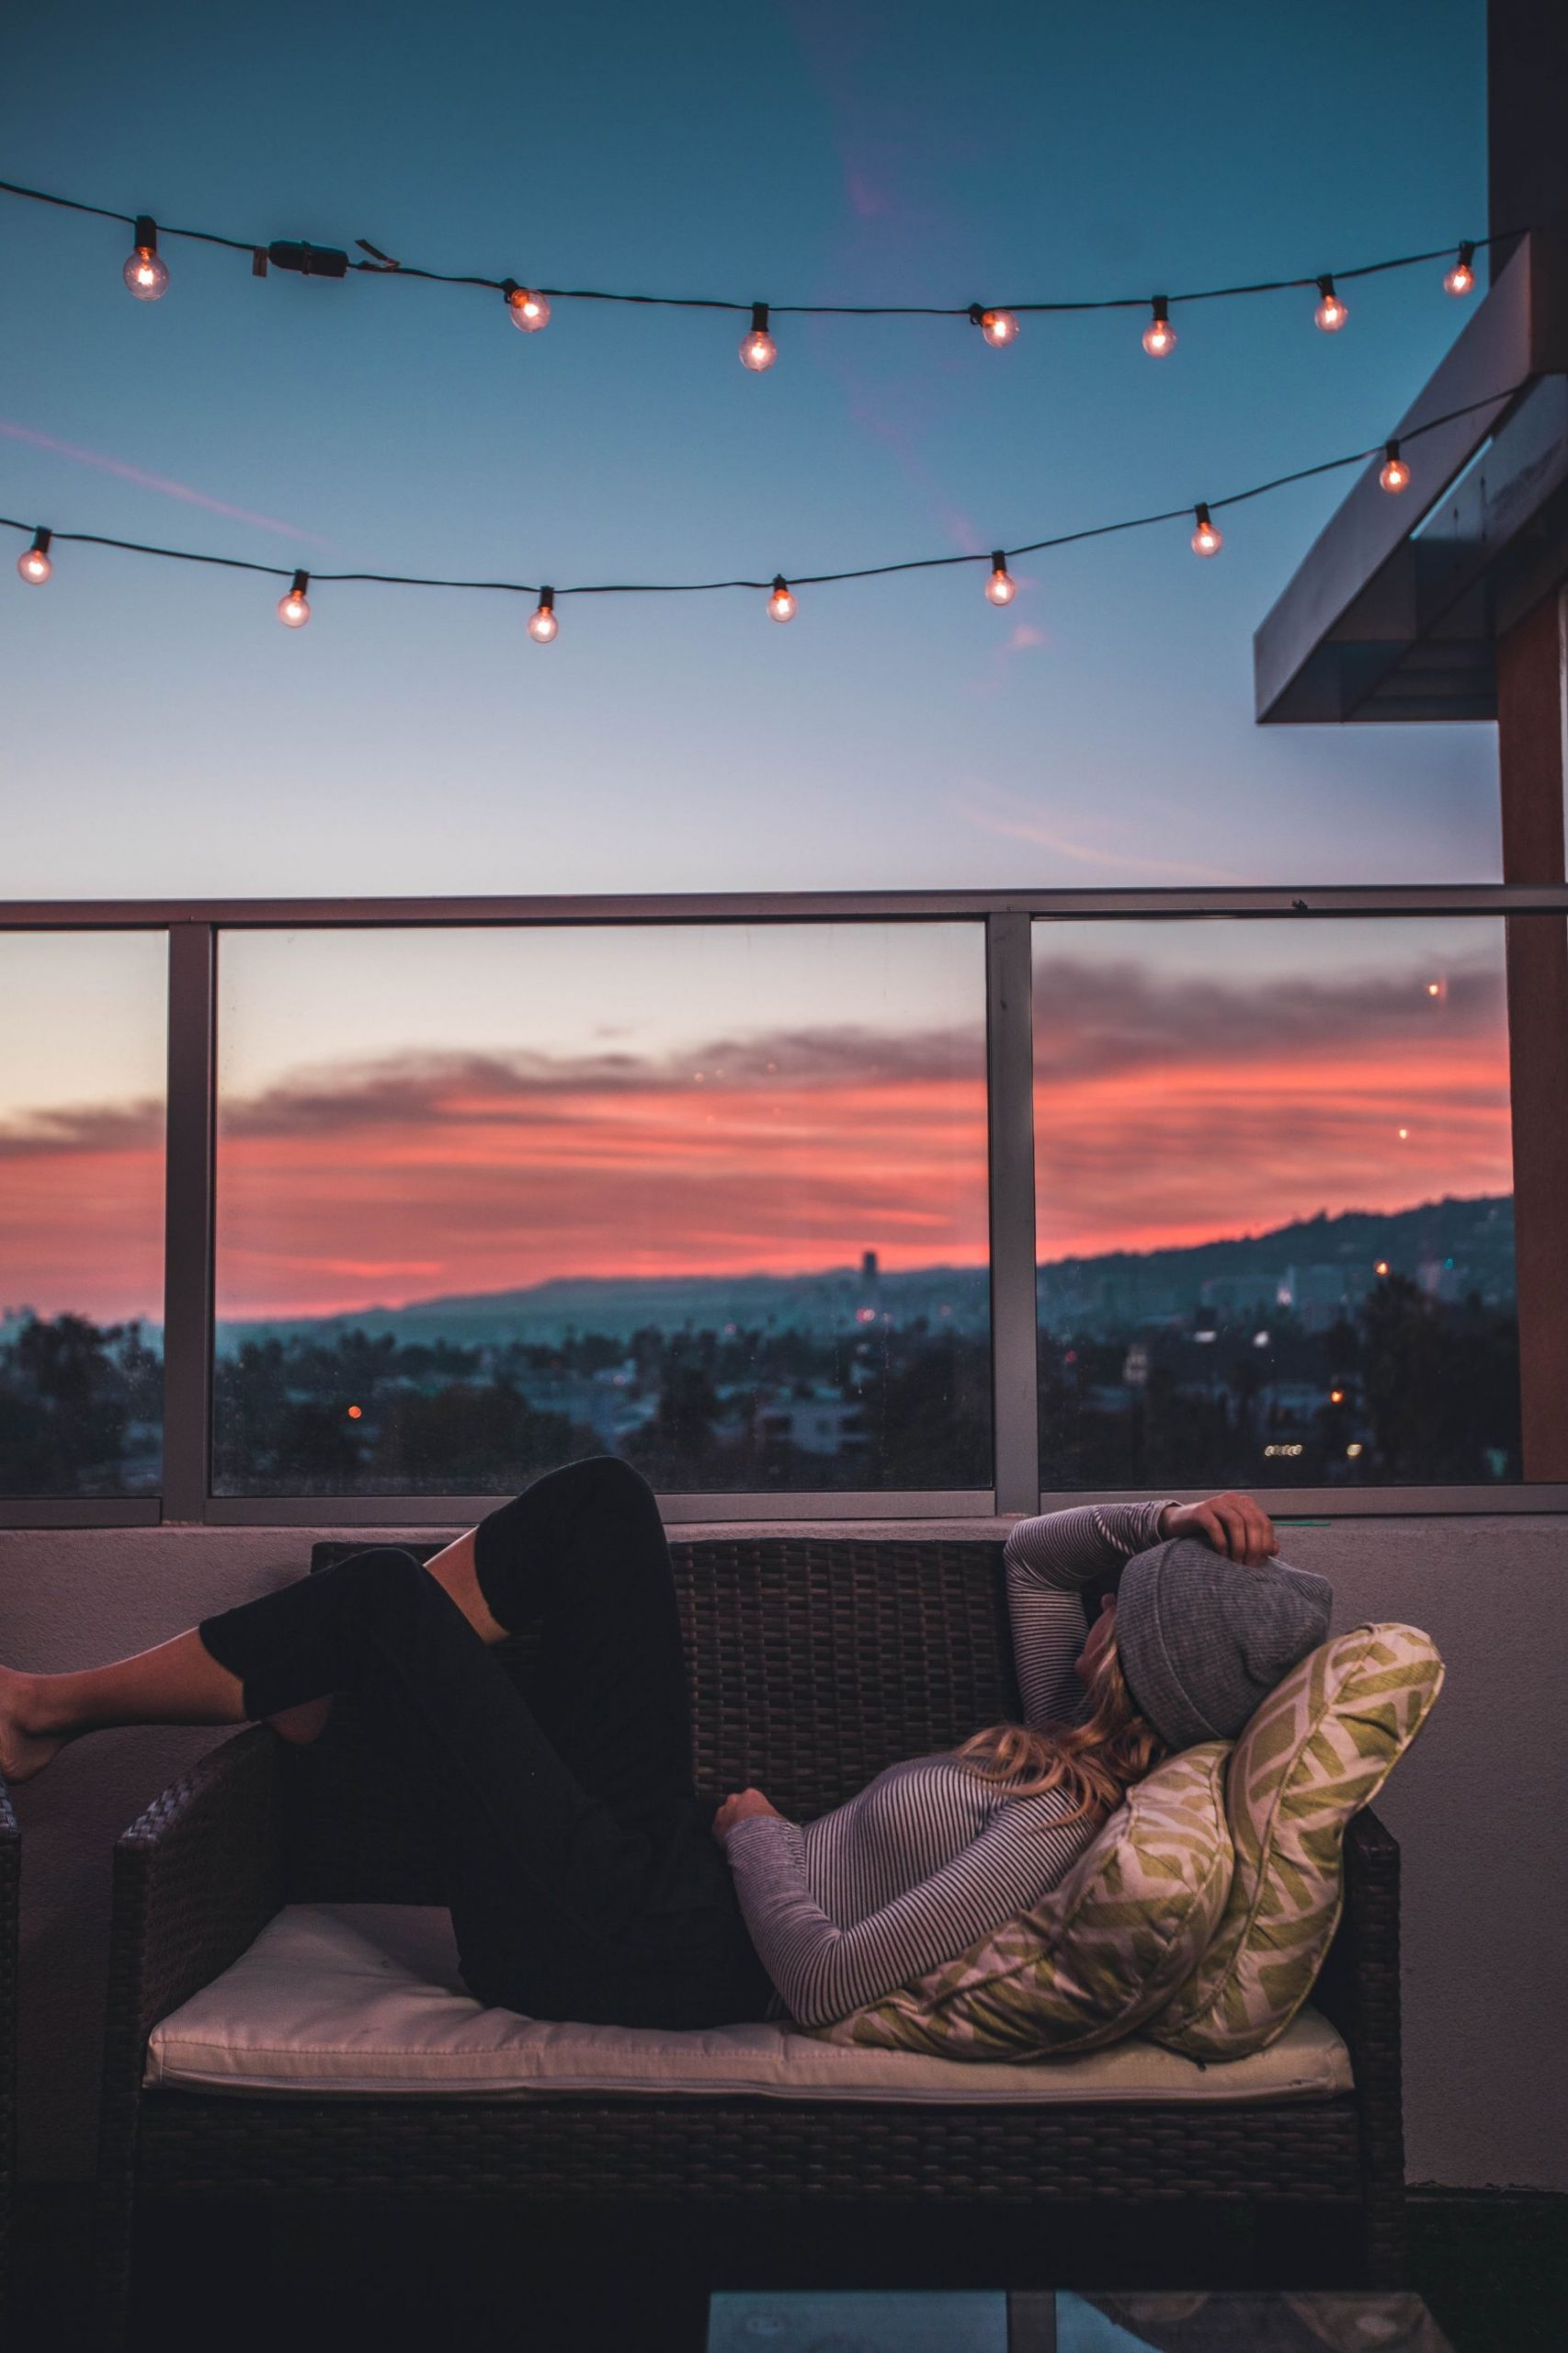 girl on a couch on a balcony at sunset